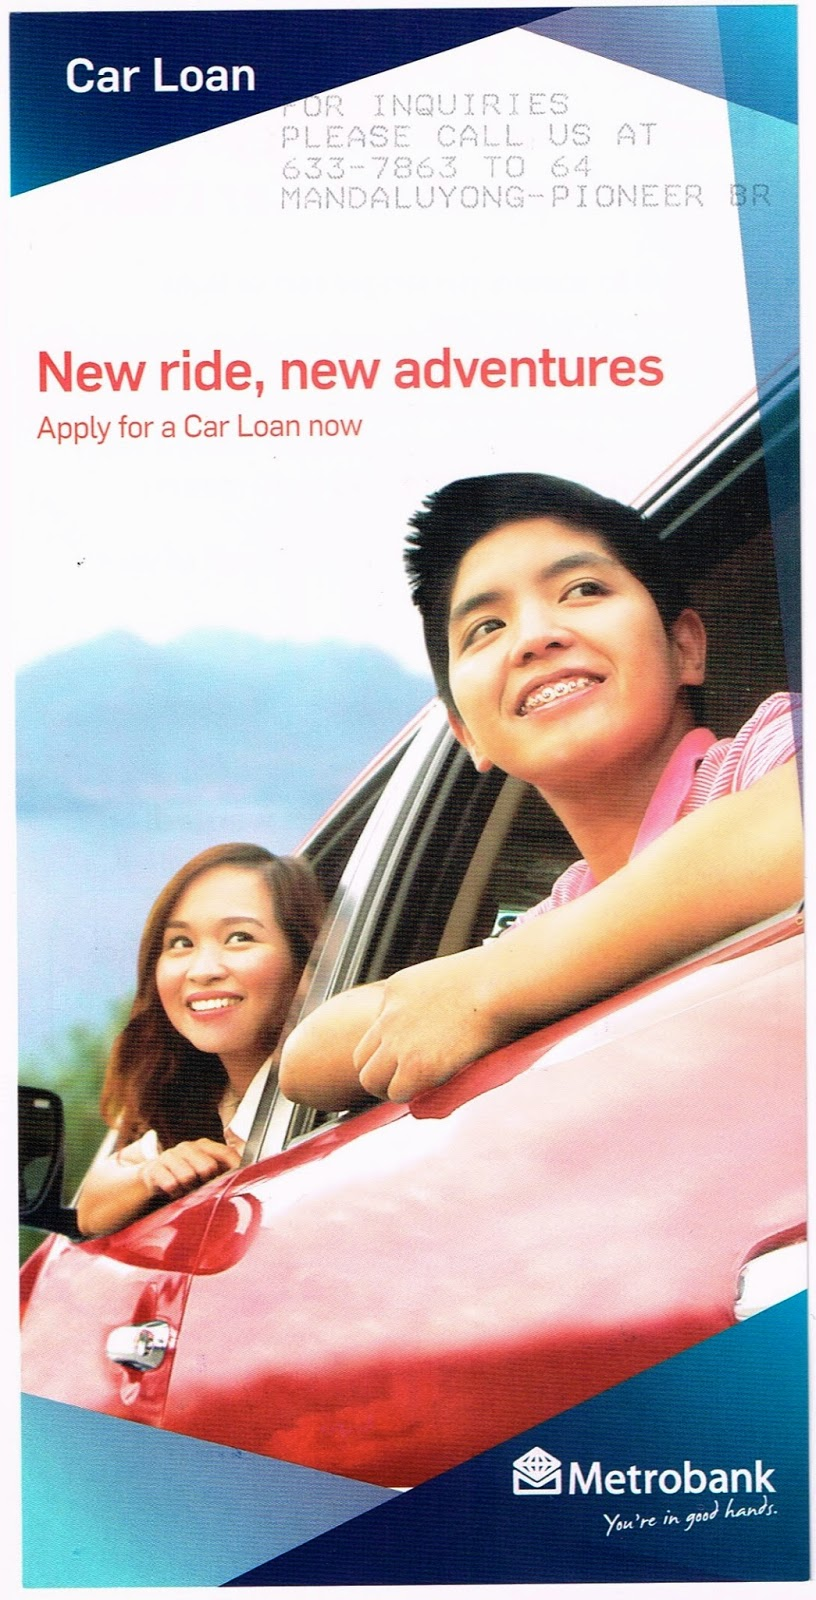 Metrobank: Car Loan New Ride, New Adventures